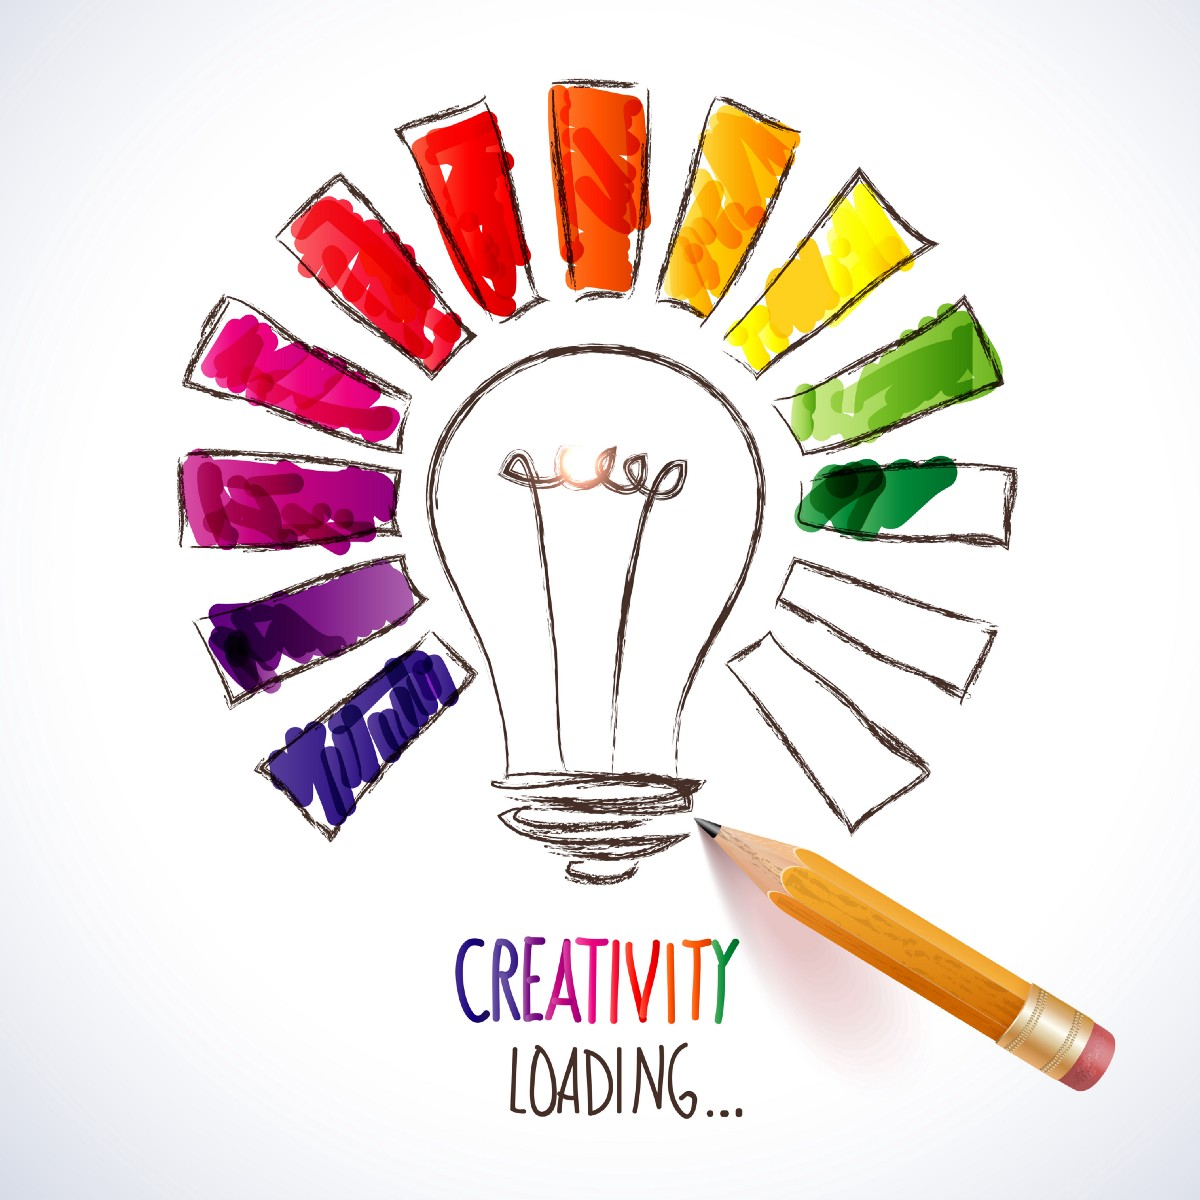 How to find your creativity sean carney medium for How to find a medium